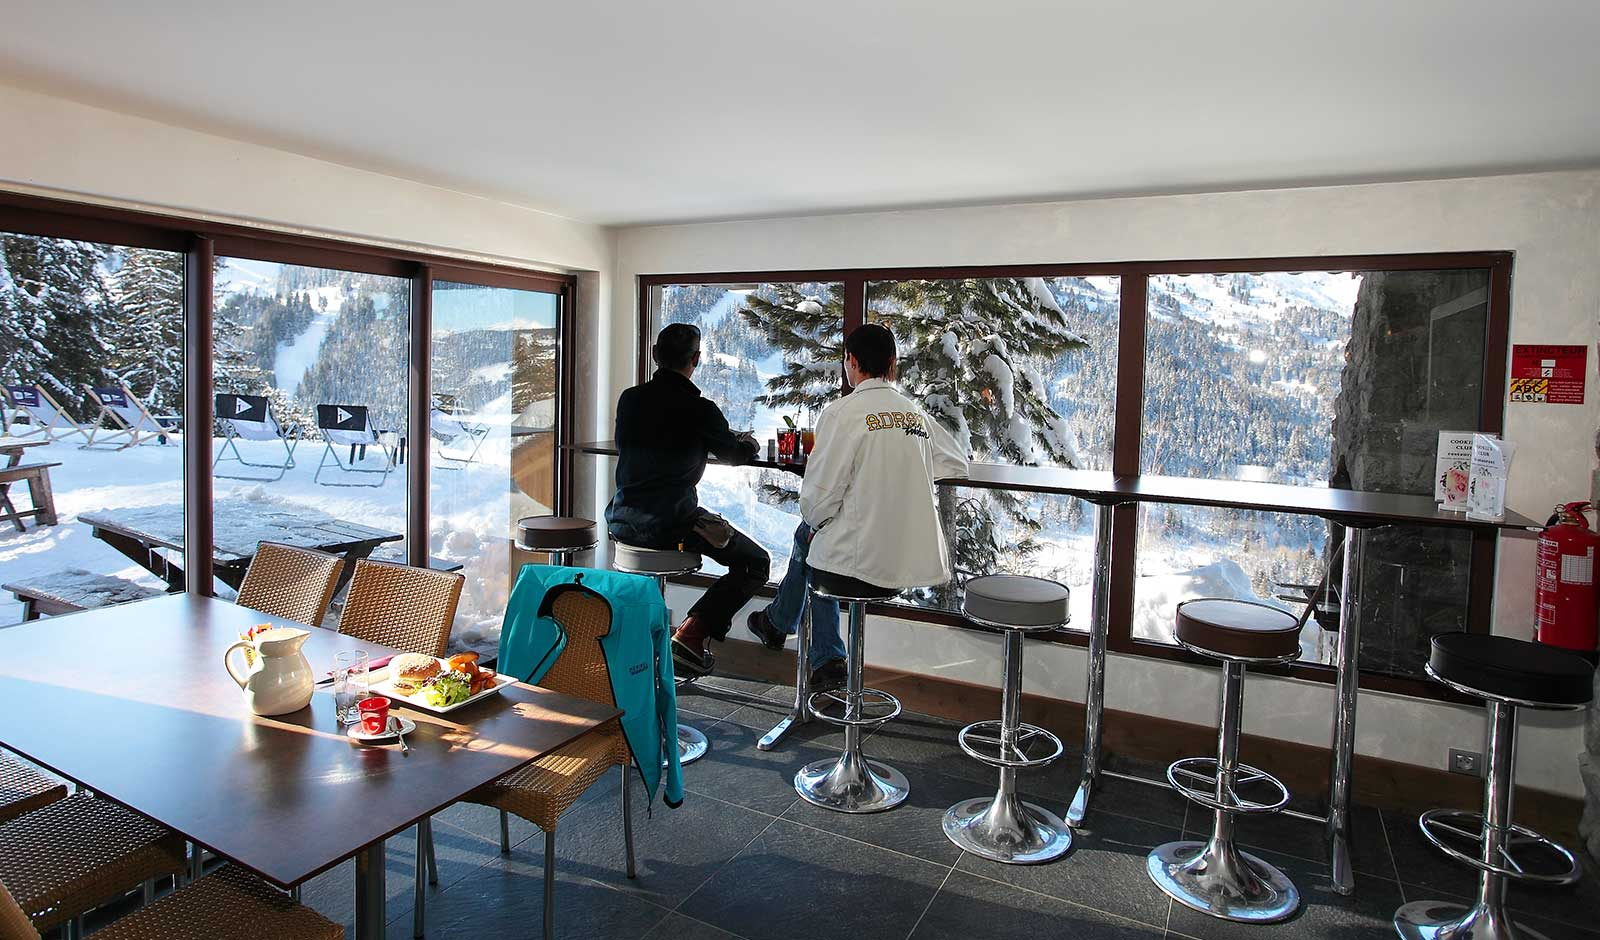 hotel-adray-telebar-10-atelier-crea-and-co-architecte-design-project-manager-meribel-savoie